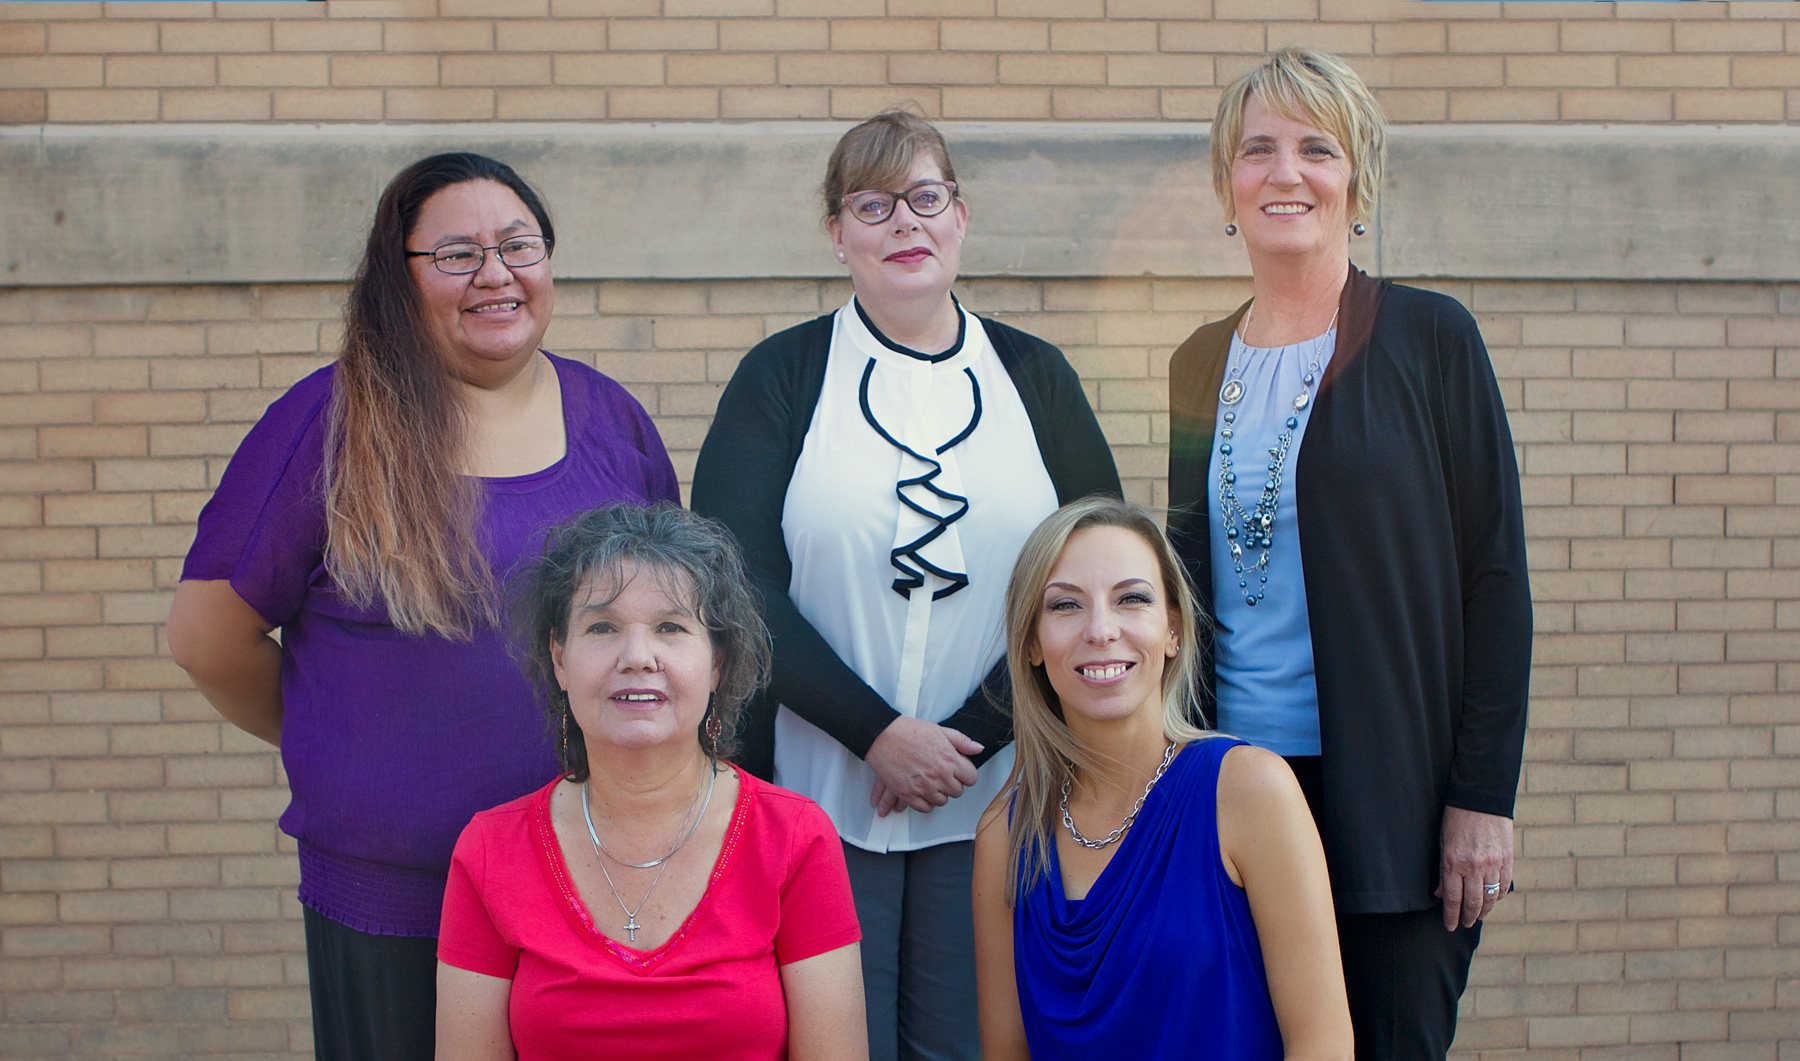 About the YWCA Great Falls Staff Photo